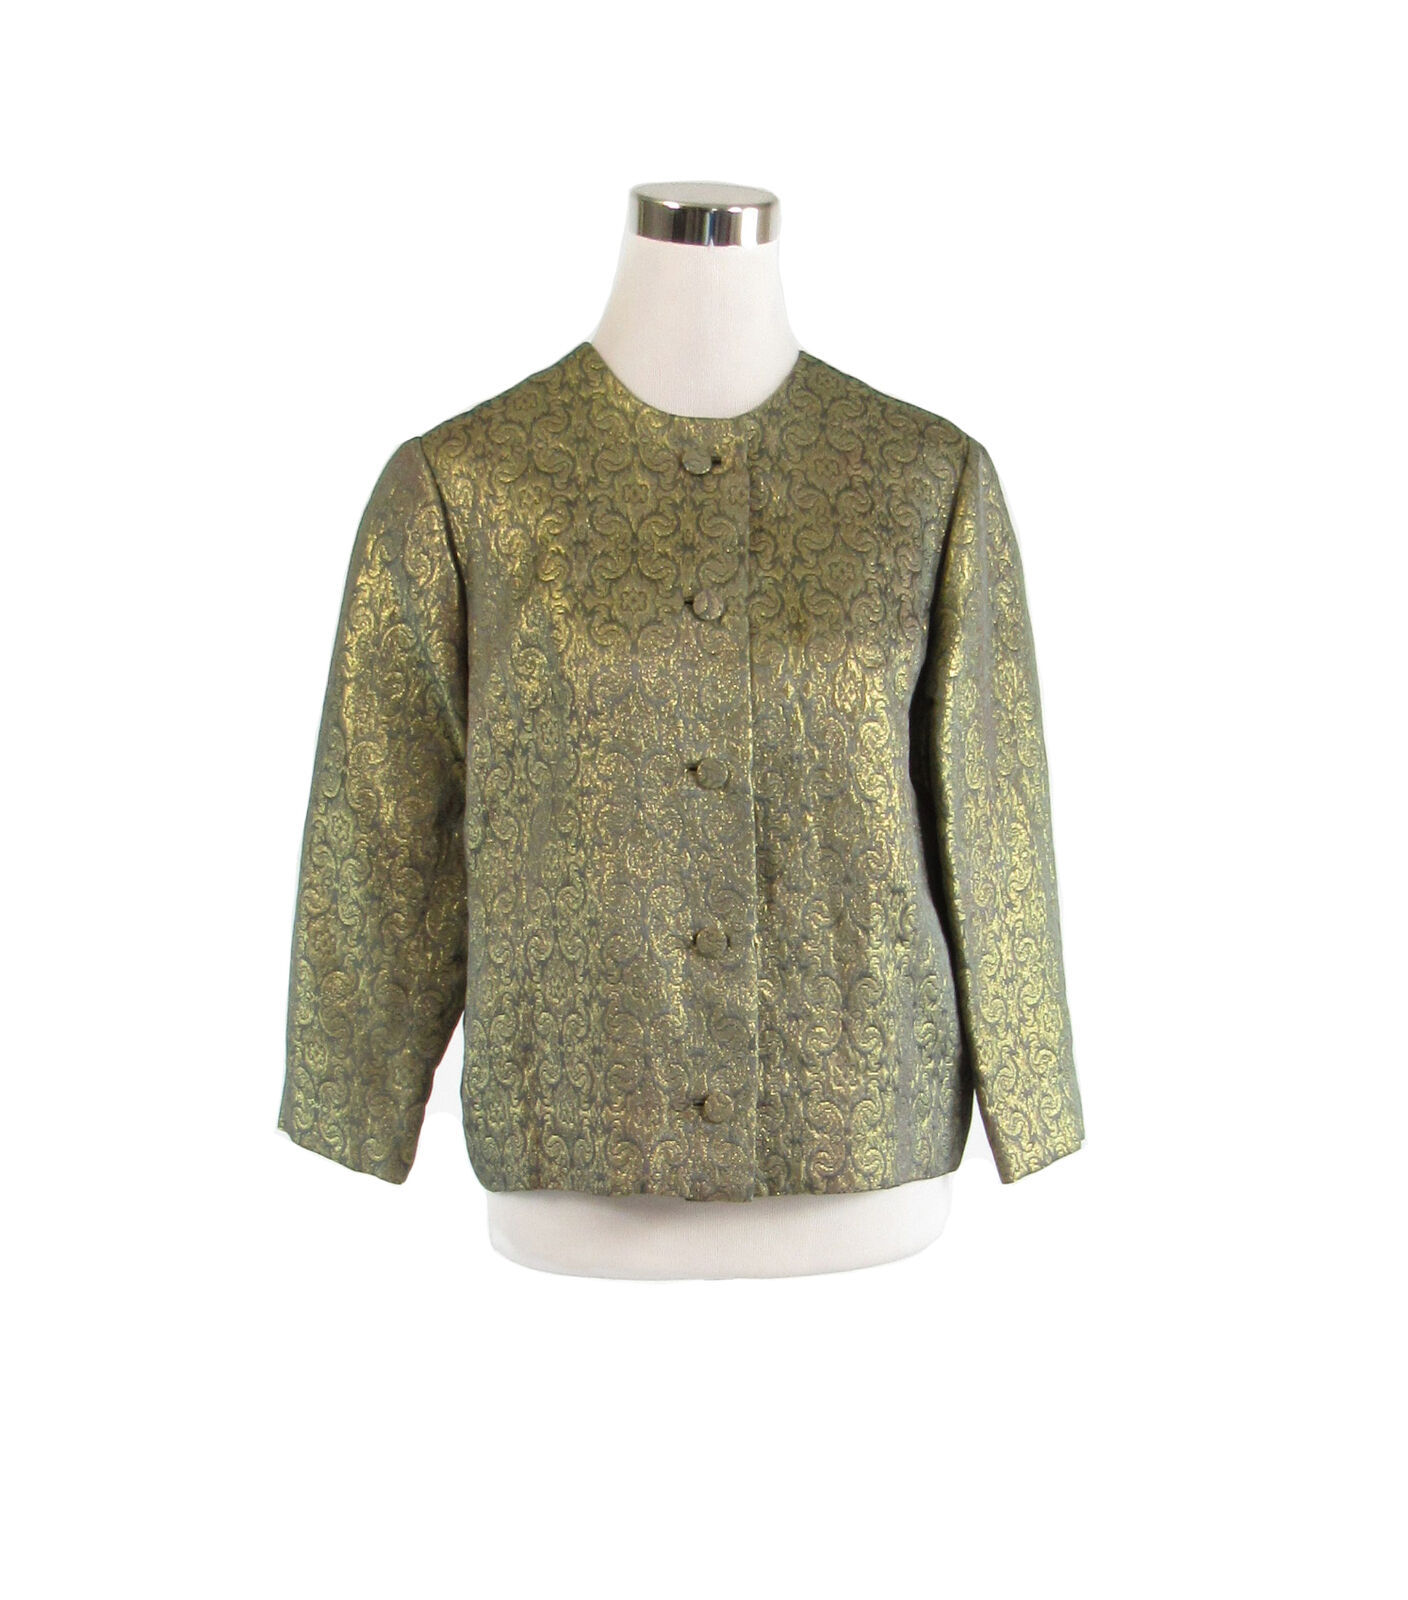 Primary image for Gray gold geometric HAL LEURS 3/4 sleeve shimmery vintage jacket M